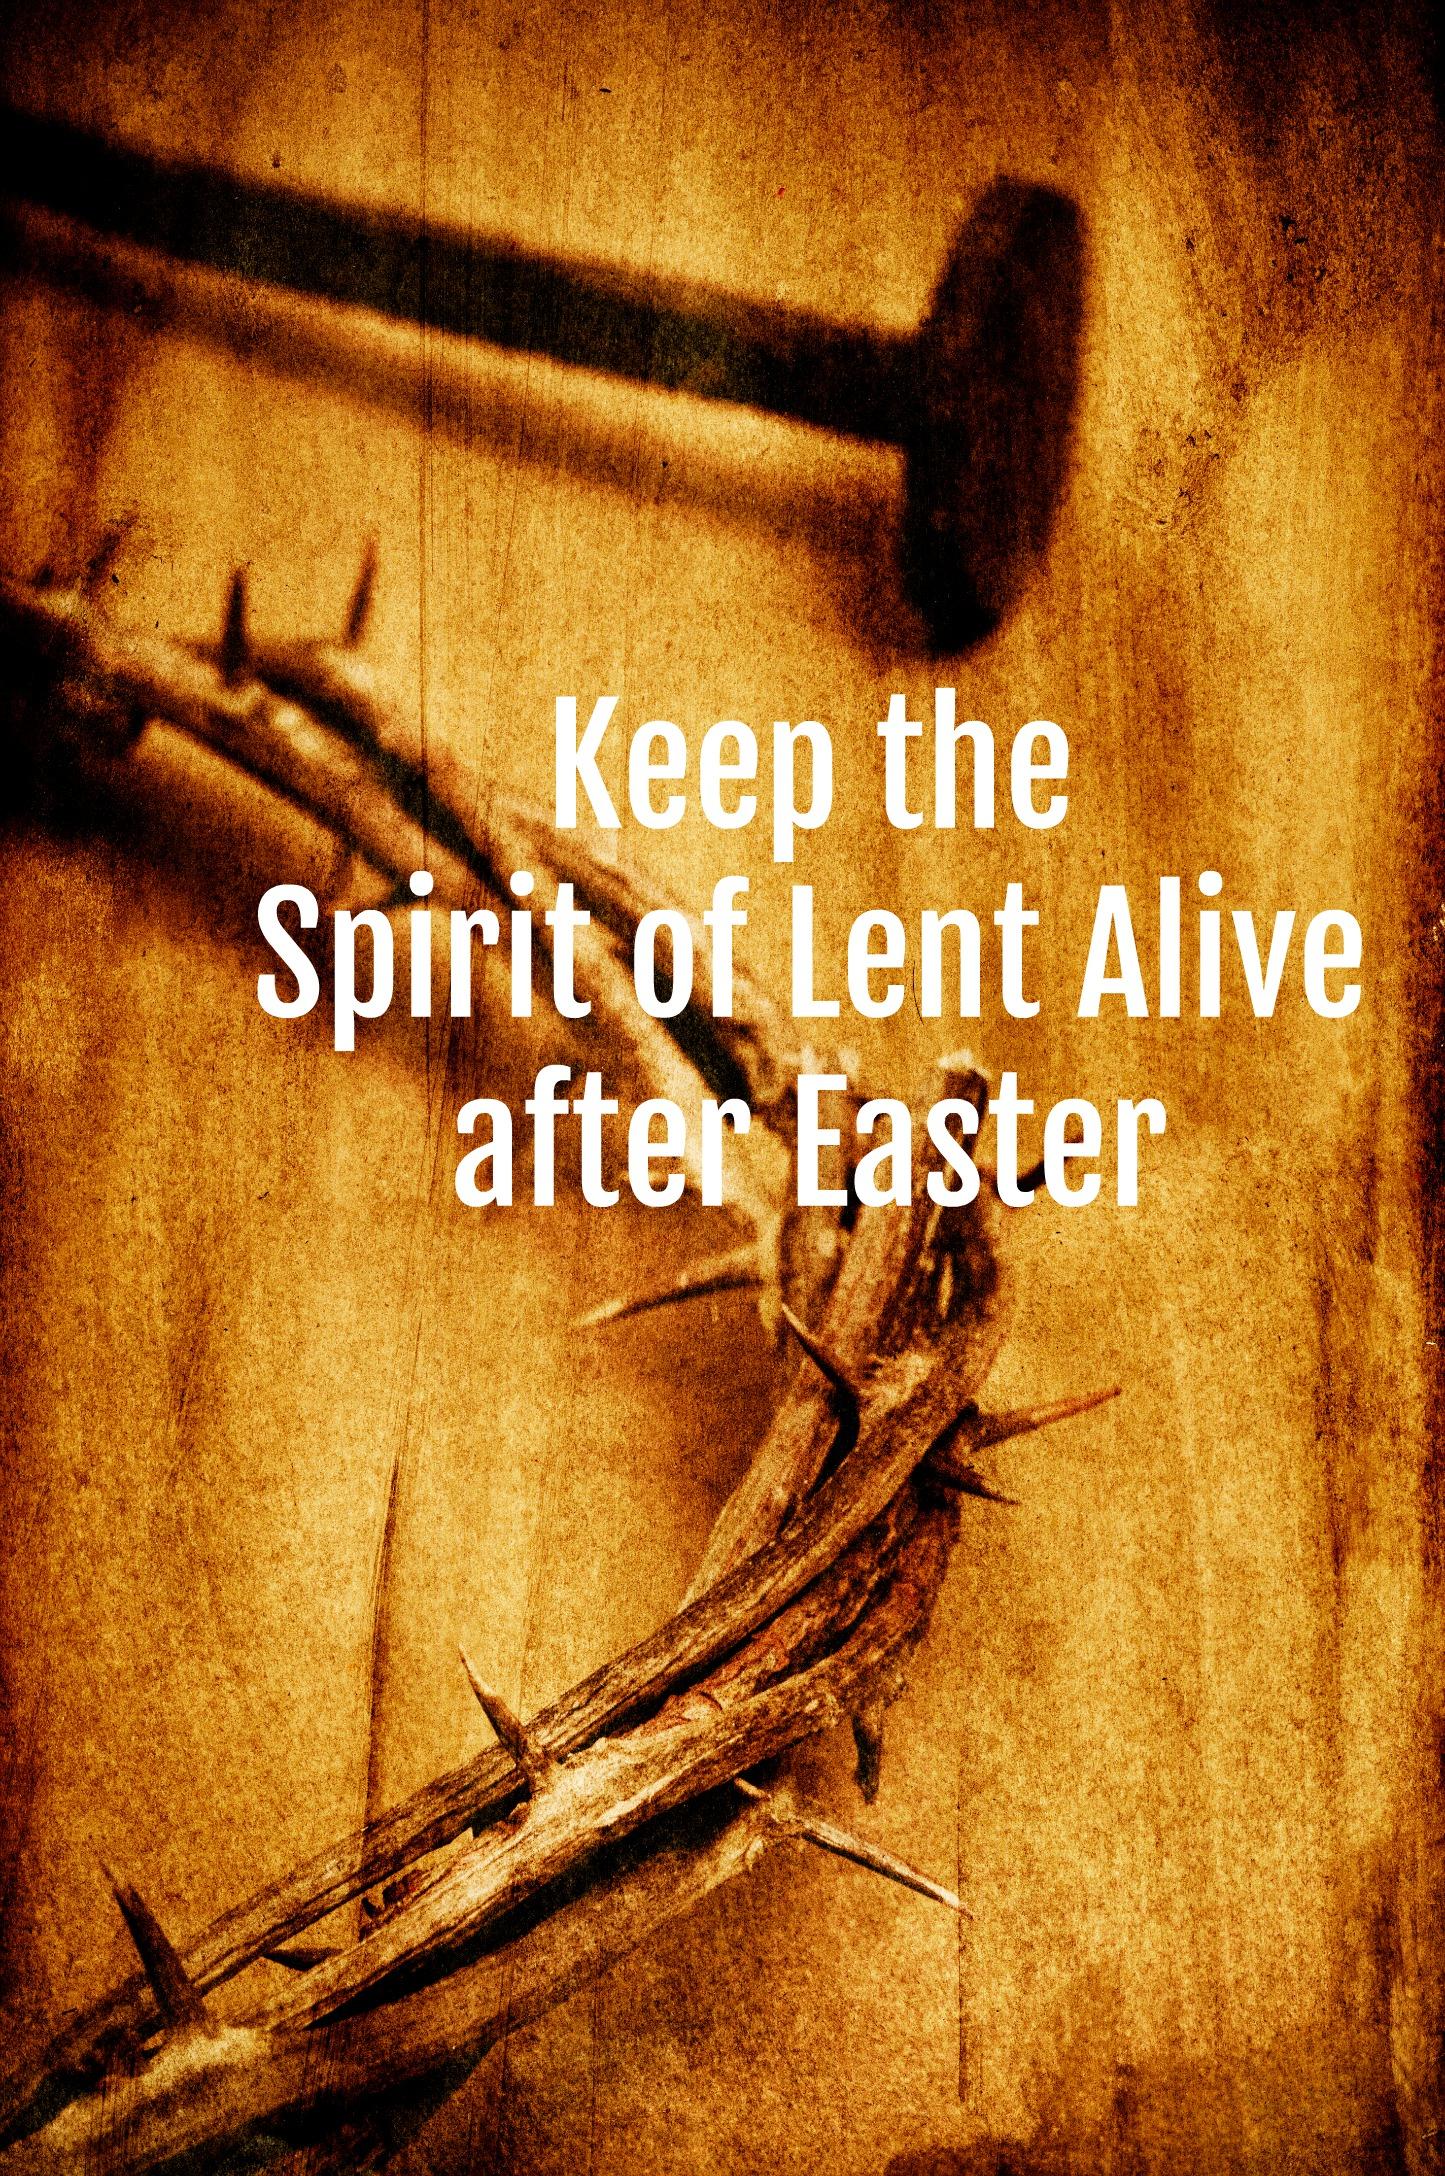 Keep the Spirit of Lent Alive after Easter